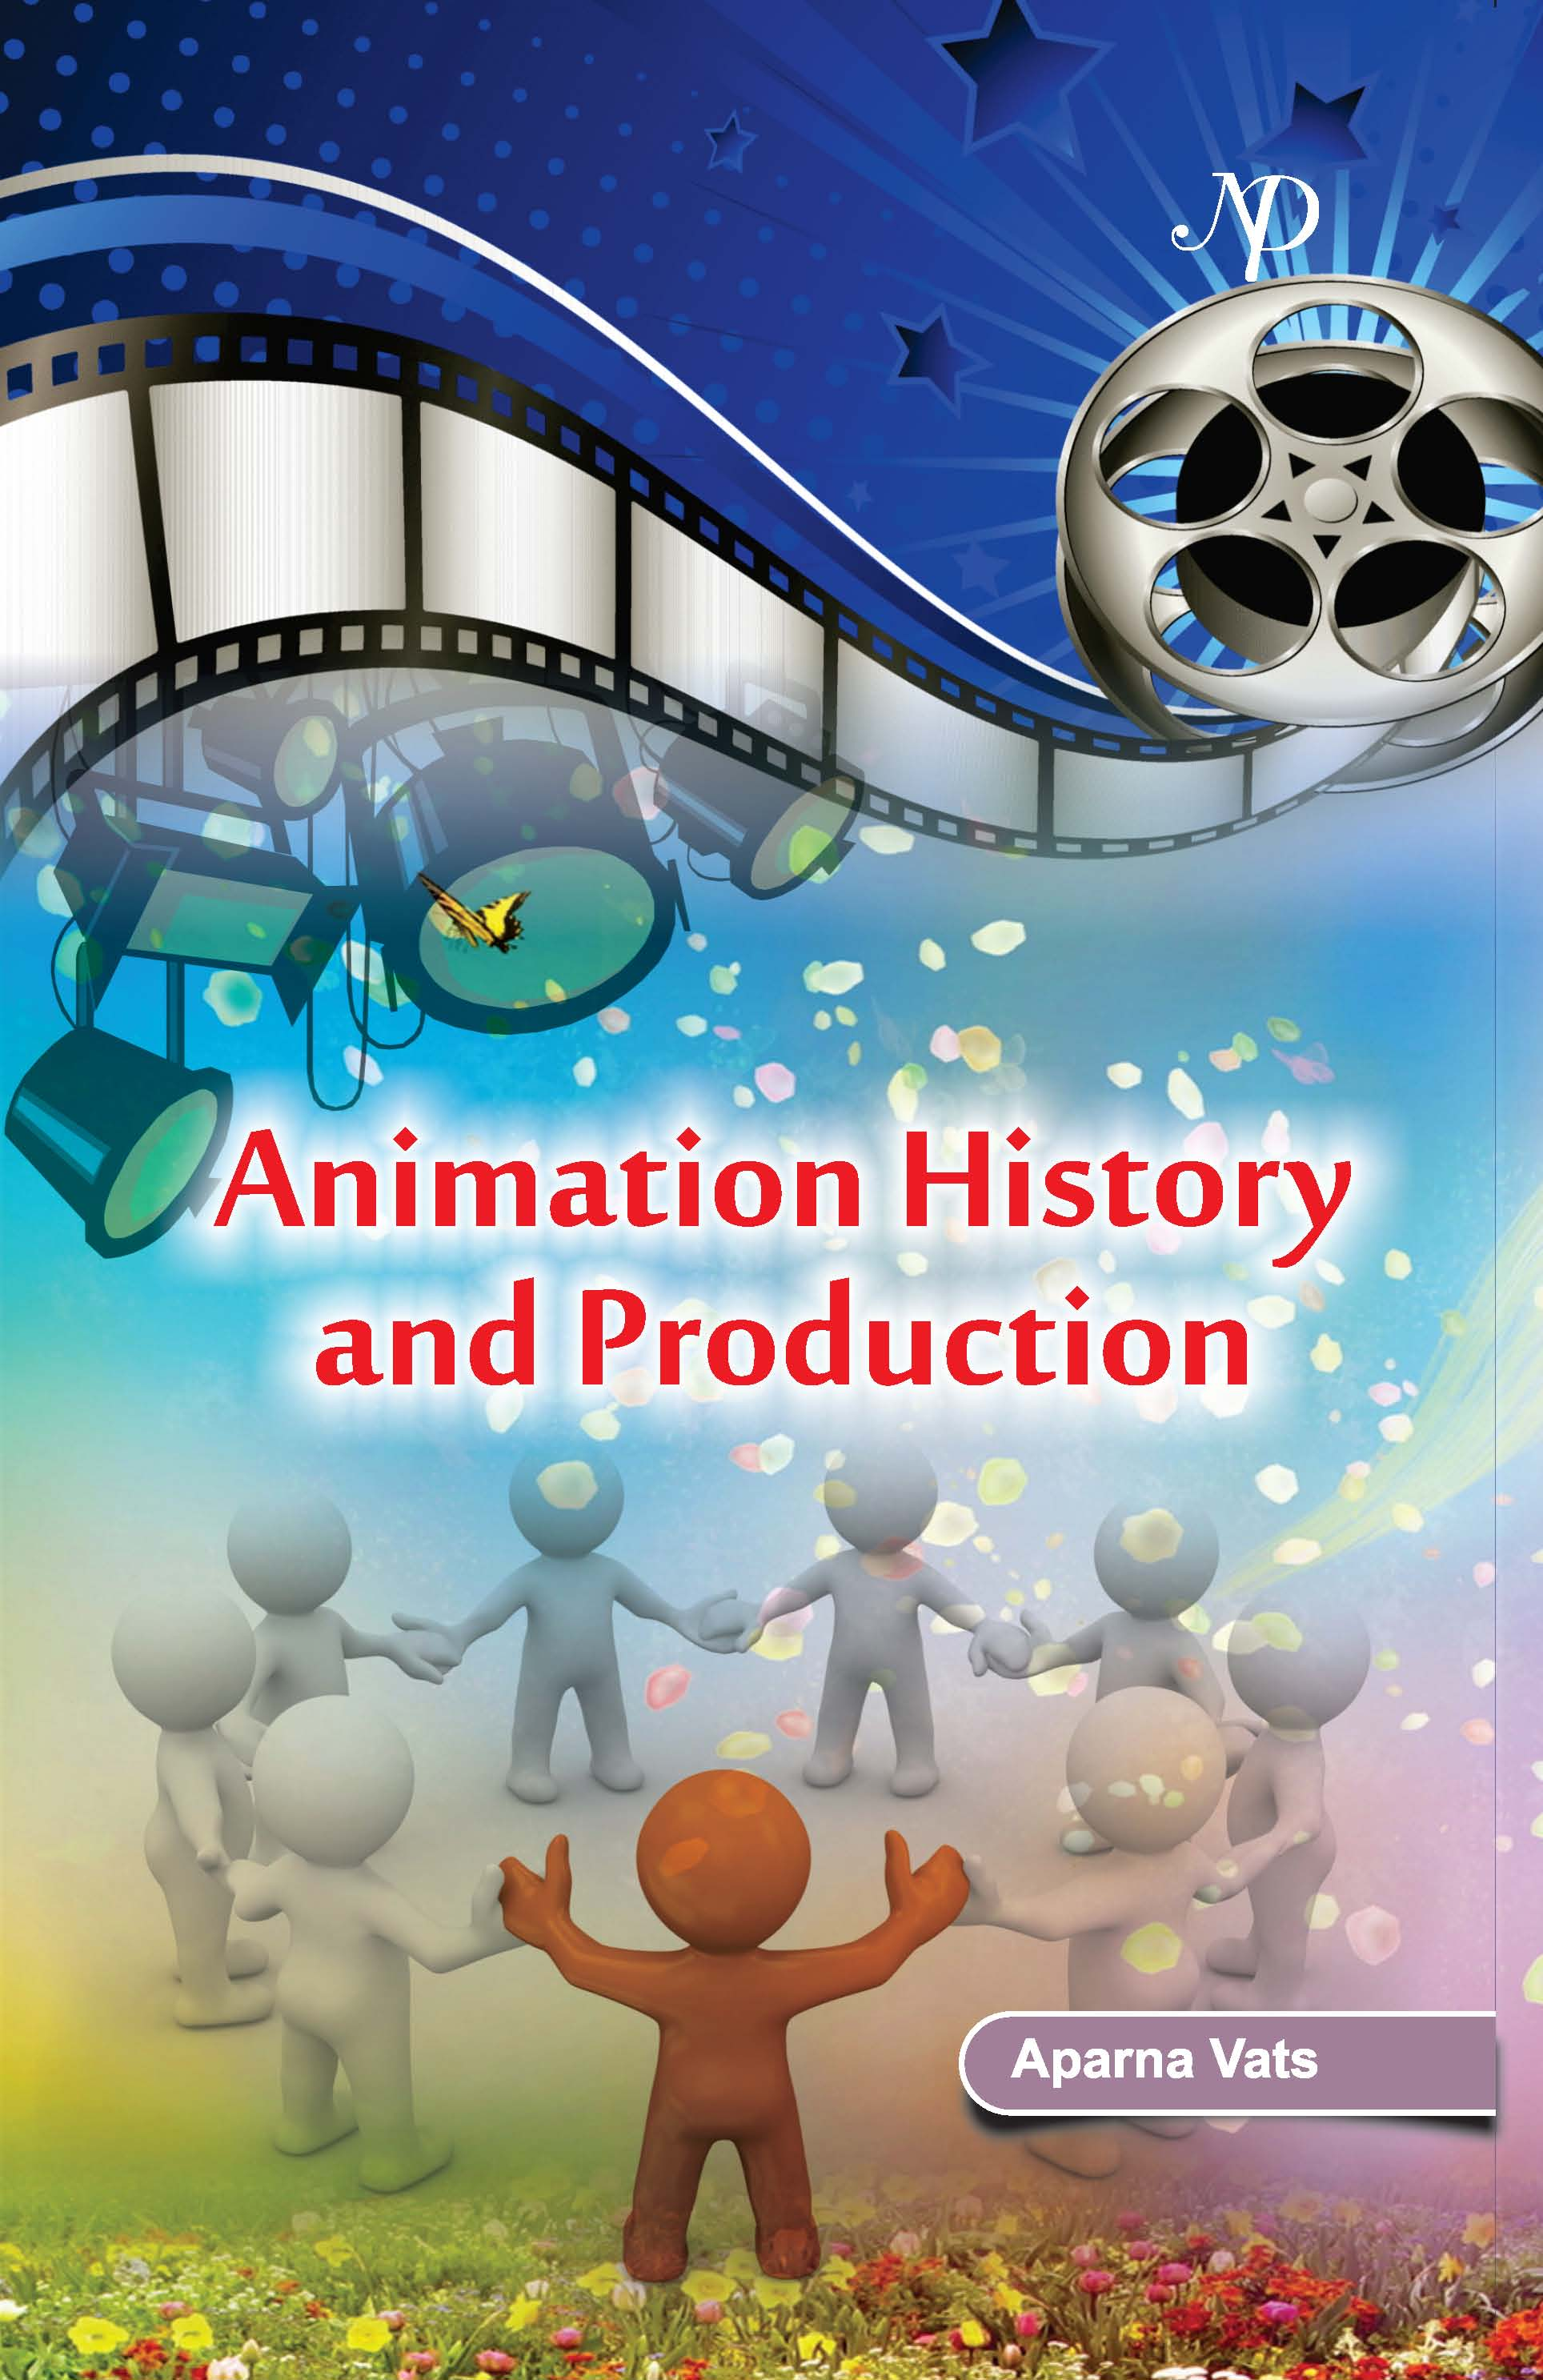 ANIMATION history and production.jpg